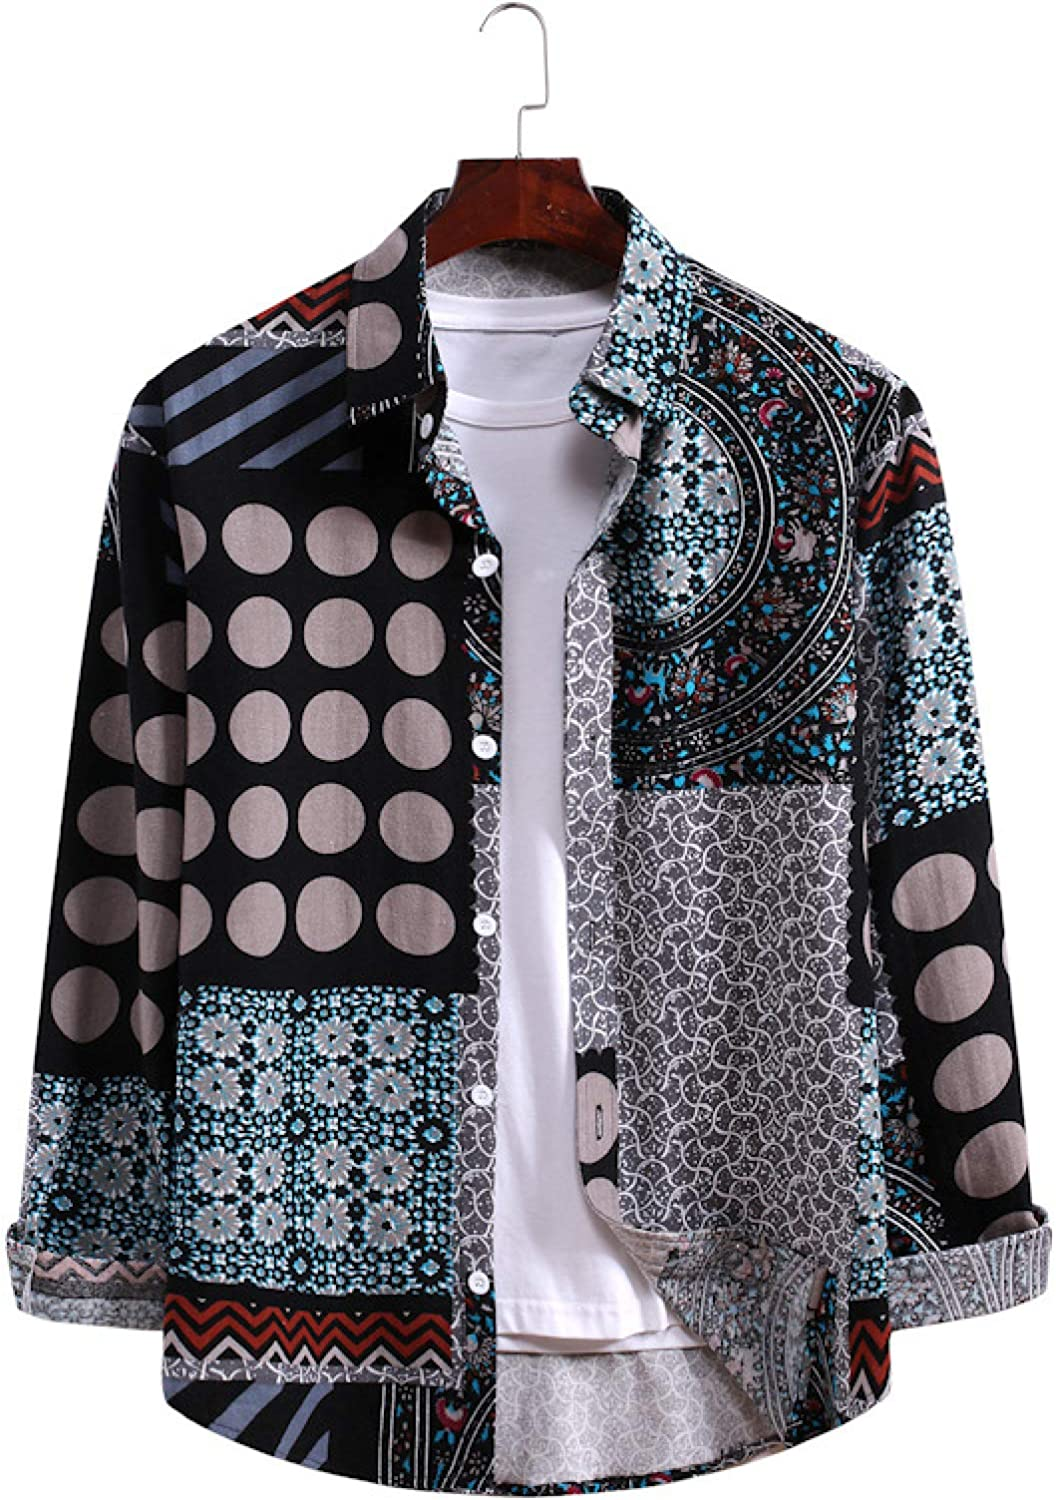 Luandge Store Men's Personality Color Sh security Printed Long-Sleeved Matching